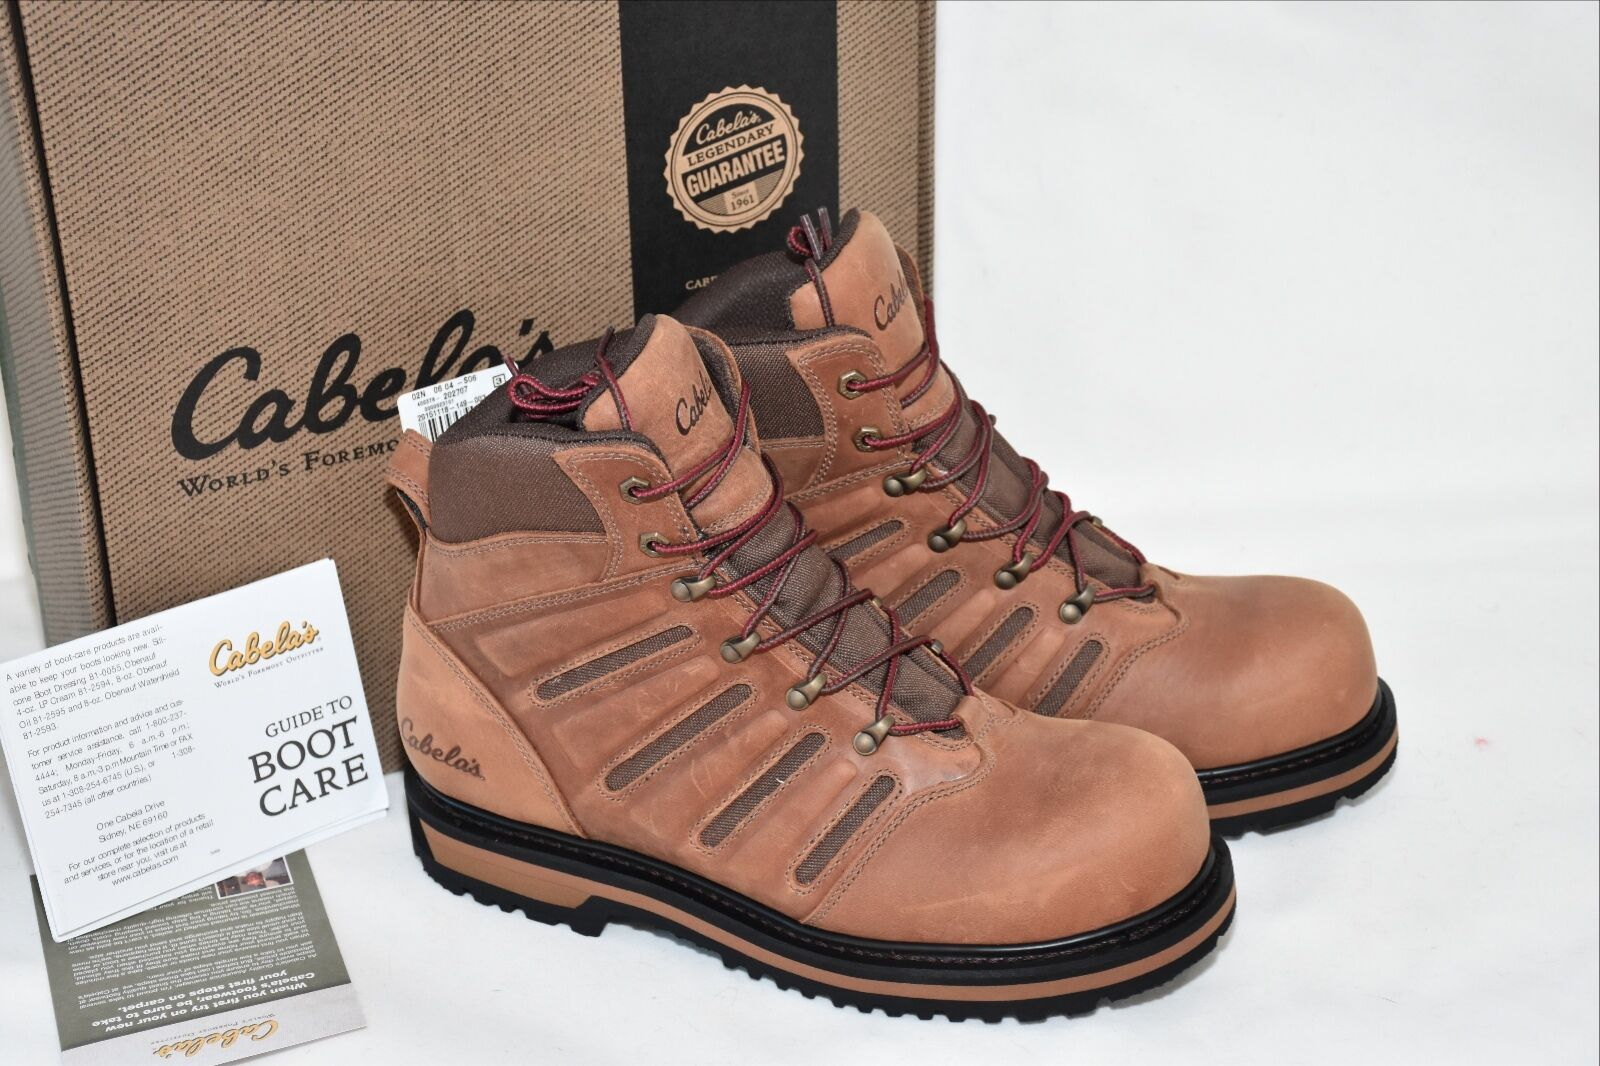 Cabela's Roughnec Vented Safety Toe S.A.W. Work Boots Leather 7